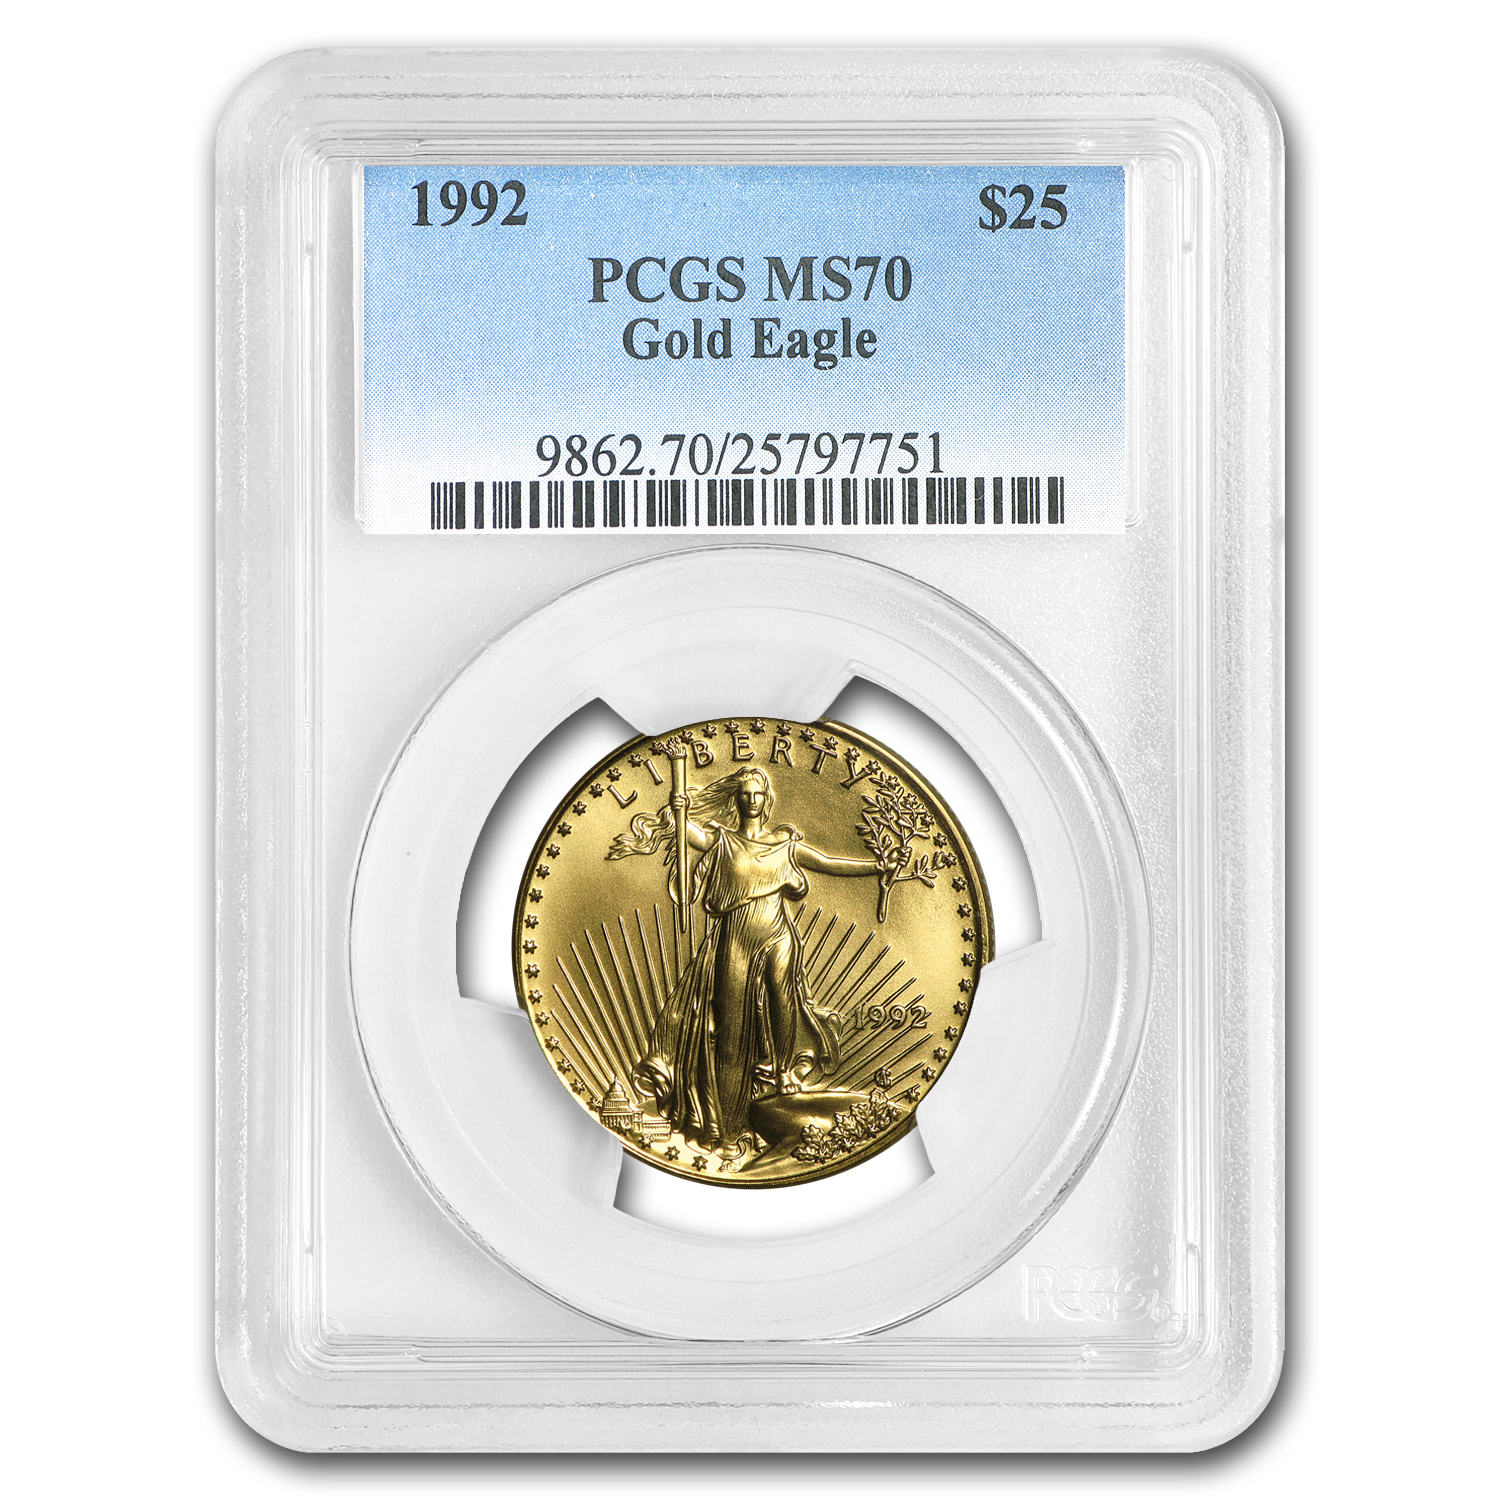 1992 1/2 oz Gold American Eagle MS-70 PCGS (Registry Set)